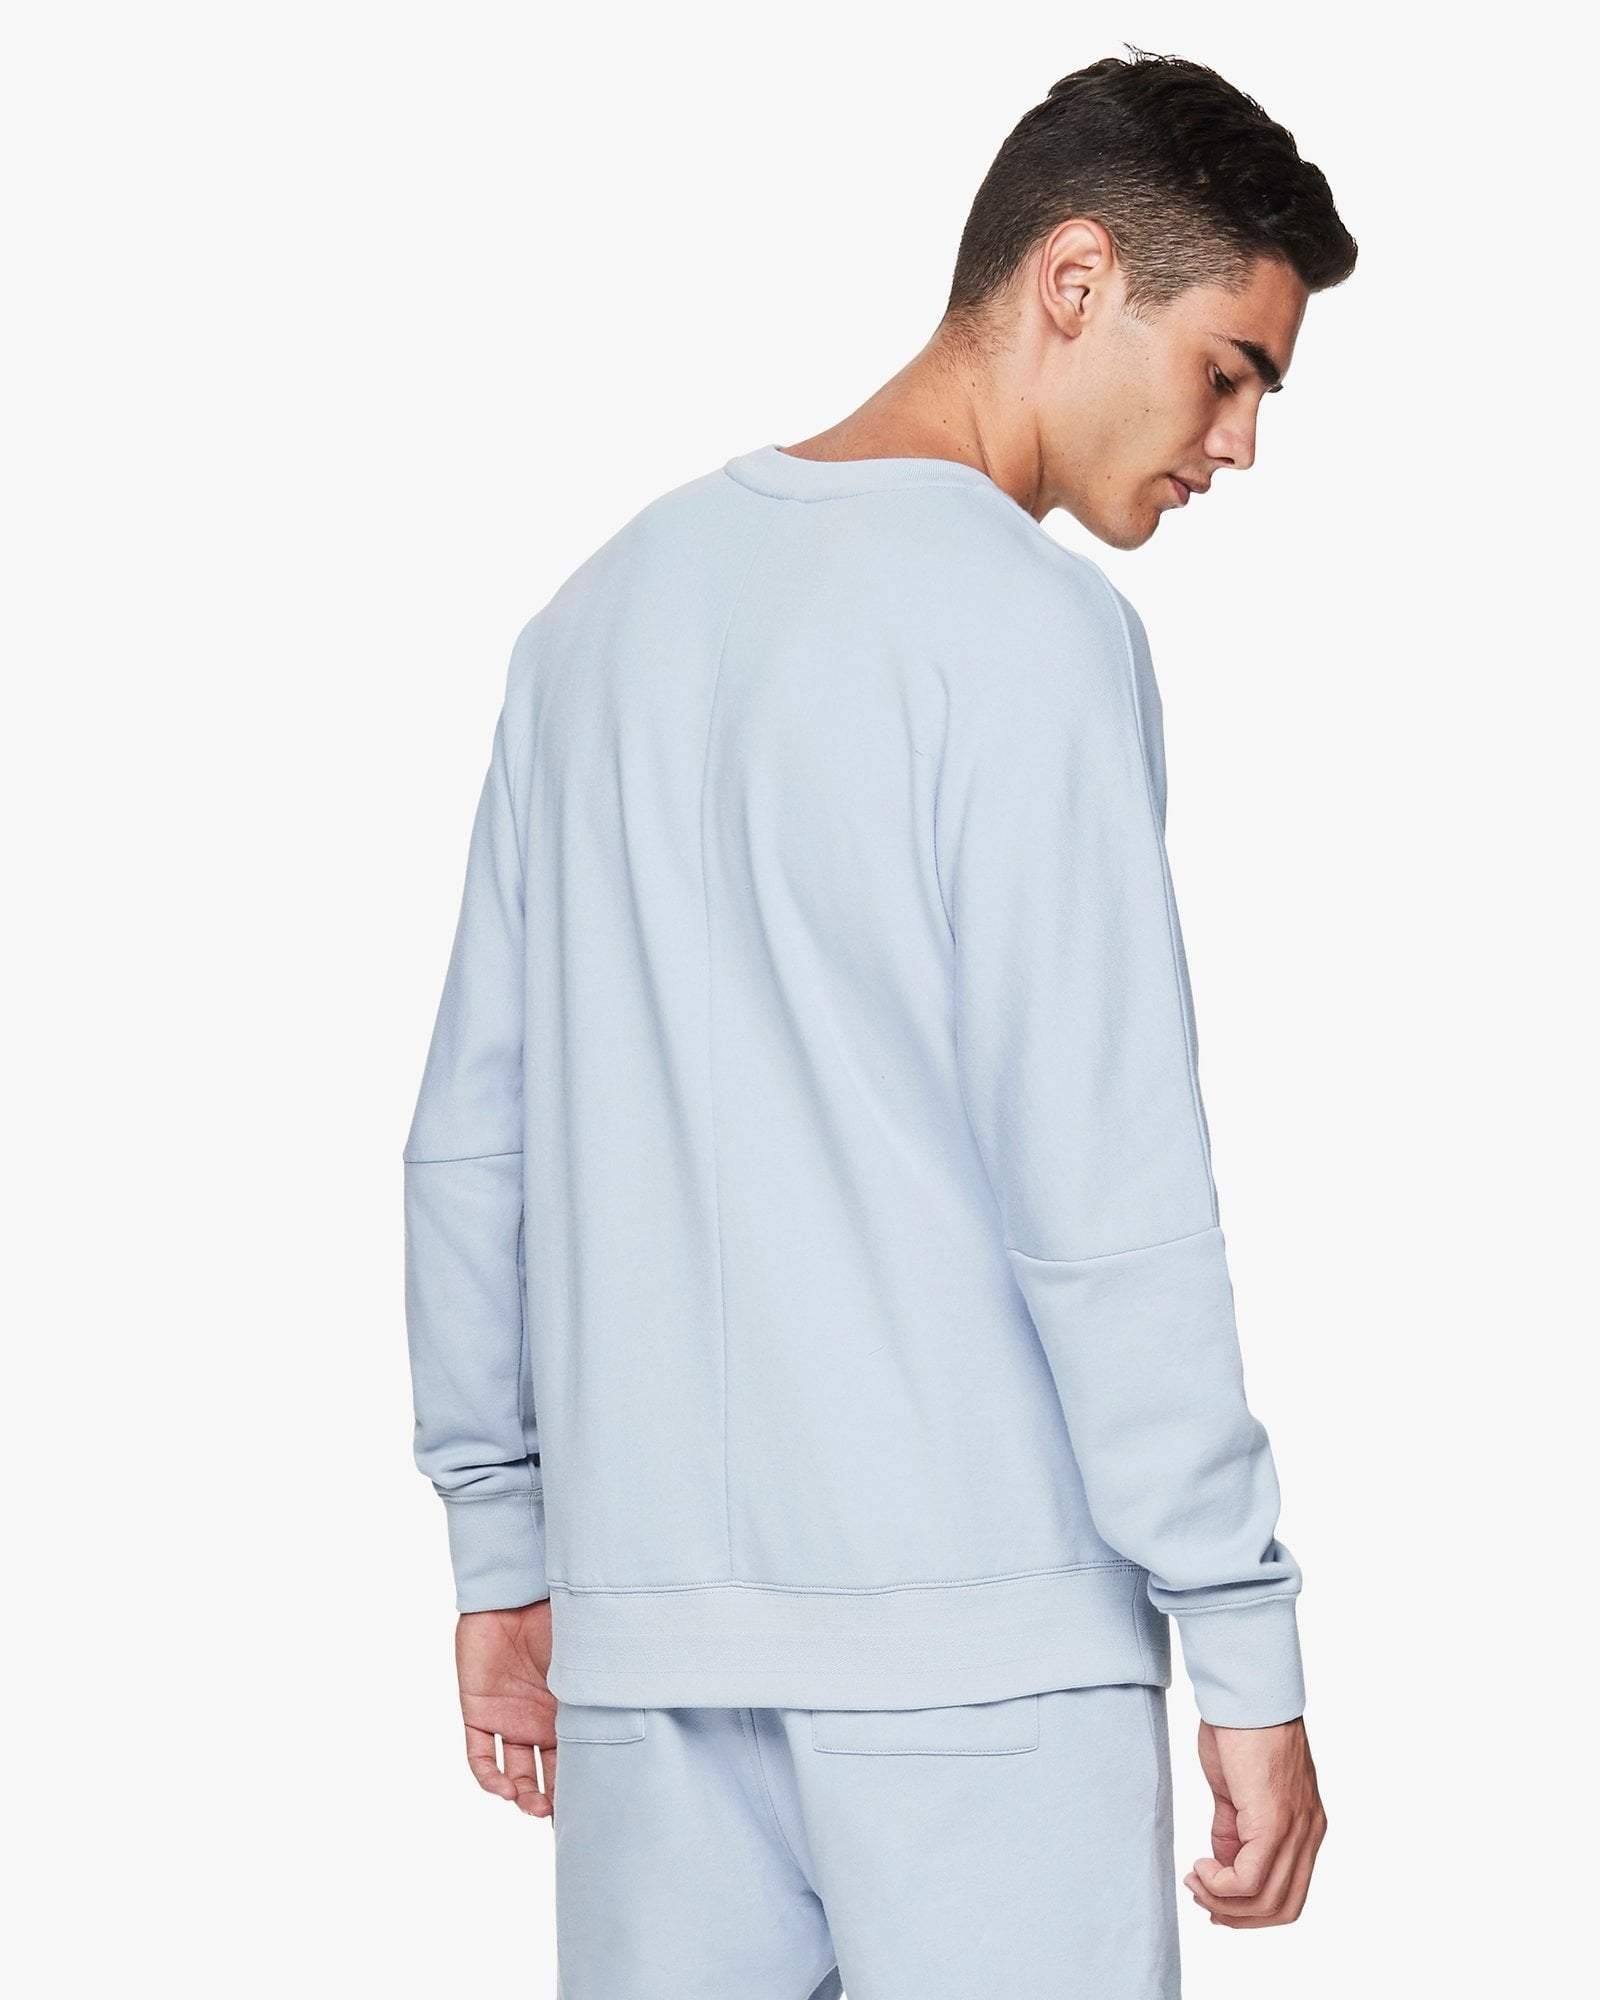 Jaggad Pale Blue Crew-Neck Sweater